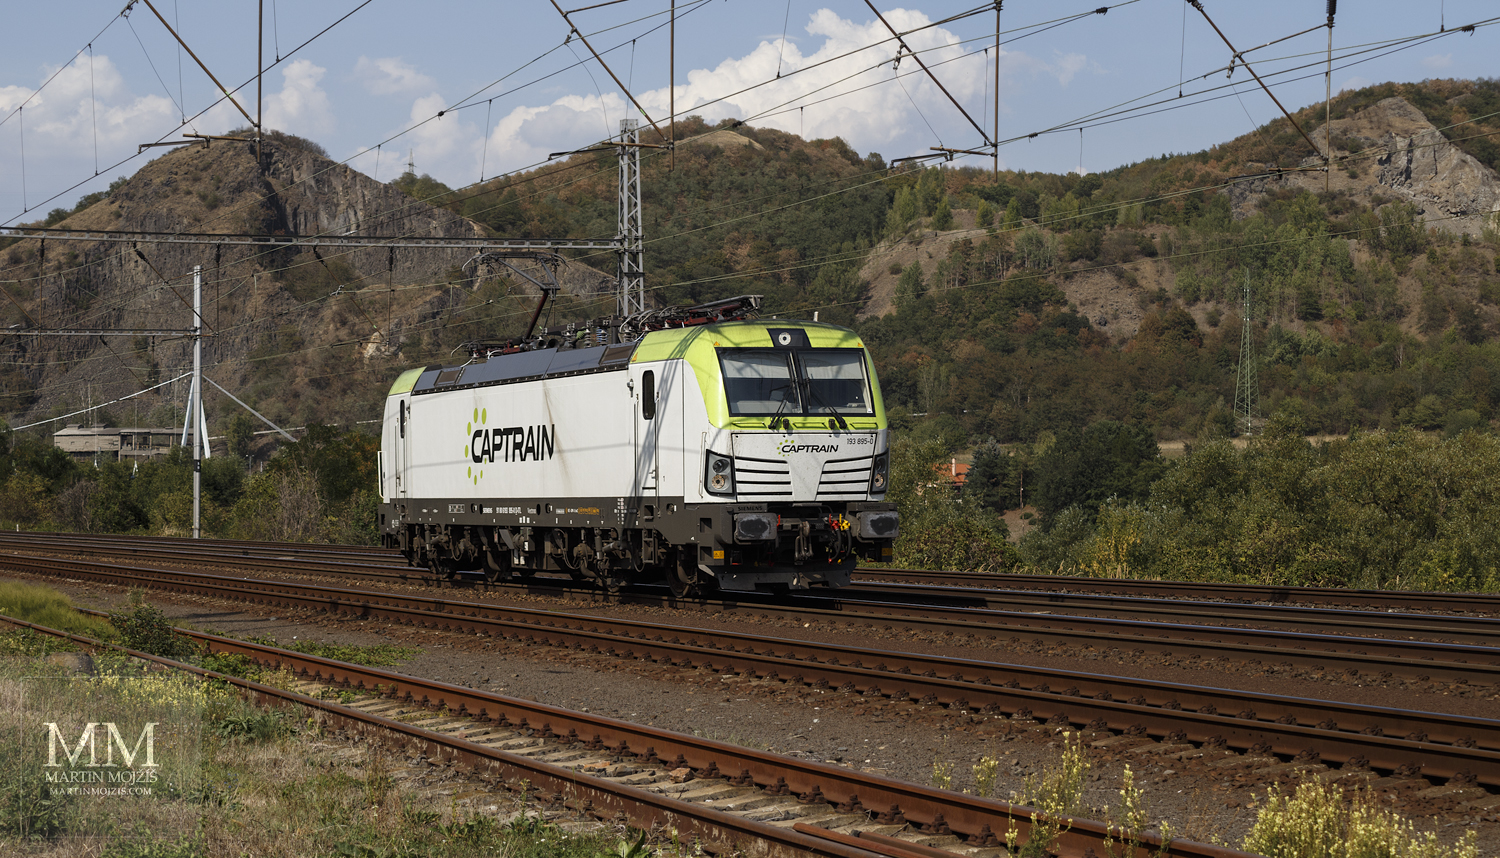 White and green electric locomotive Siemens Vectron 193 895-0 Captrain.